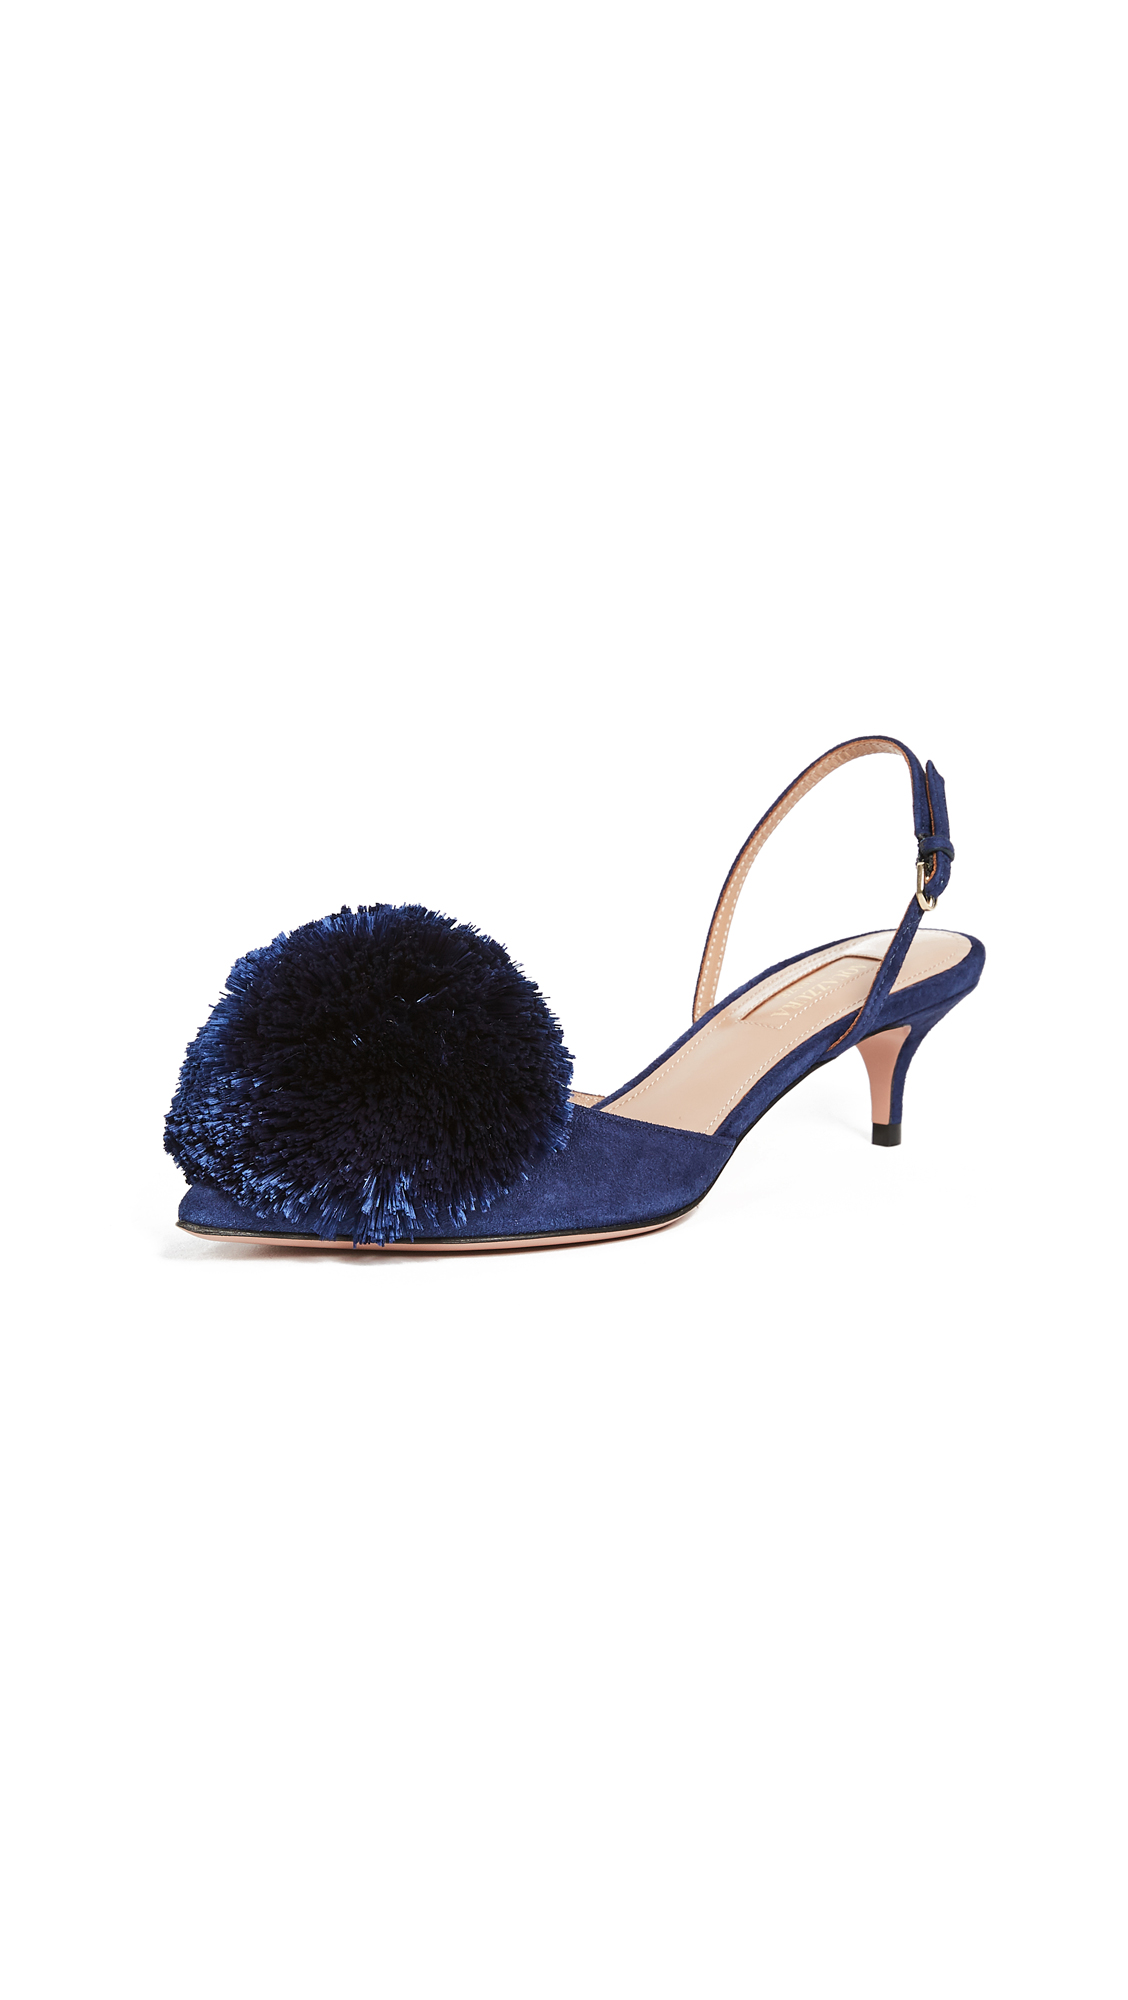 Aquazzura Powder Puff 45 Sling Pumps - Navy